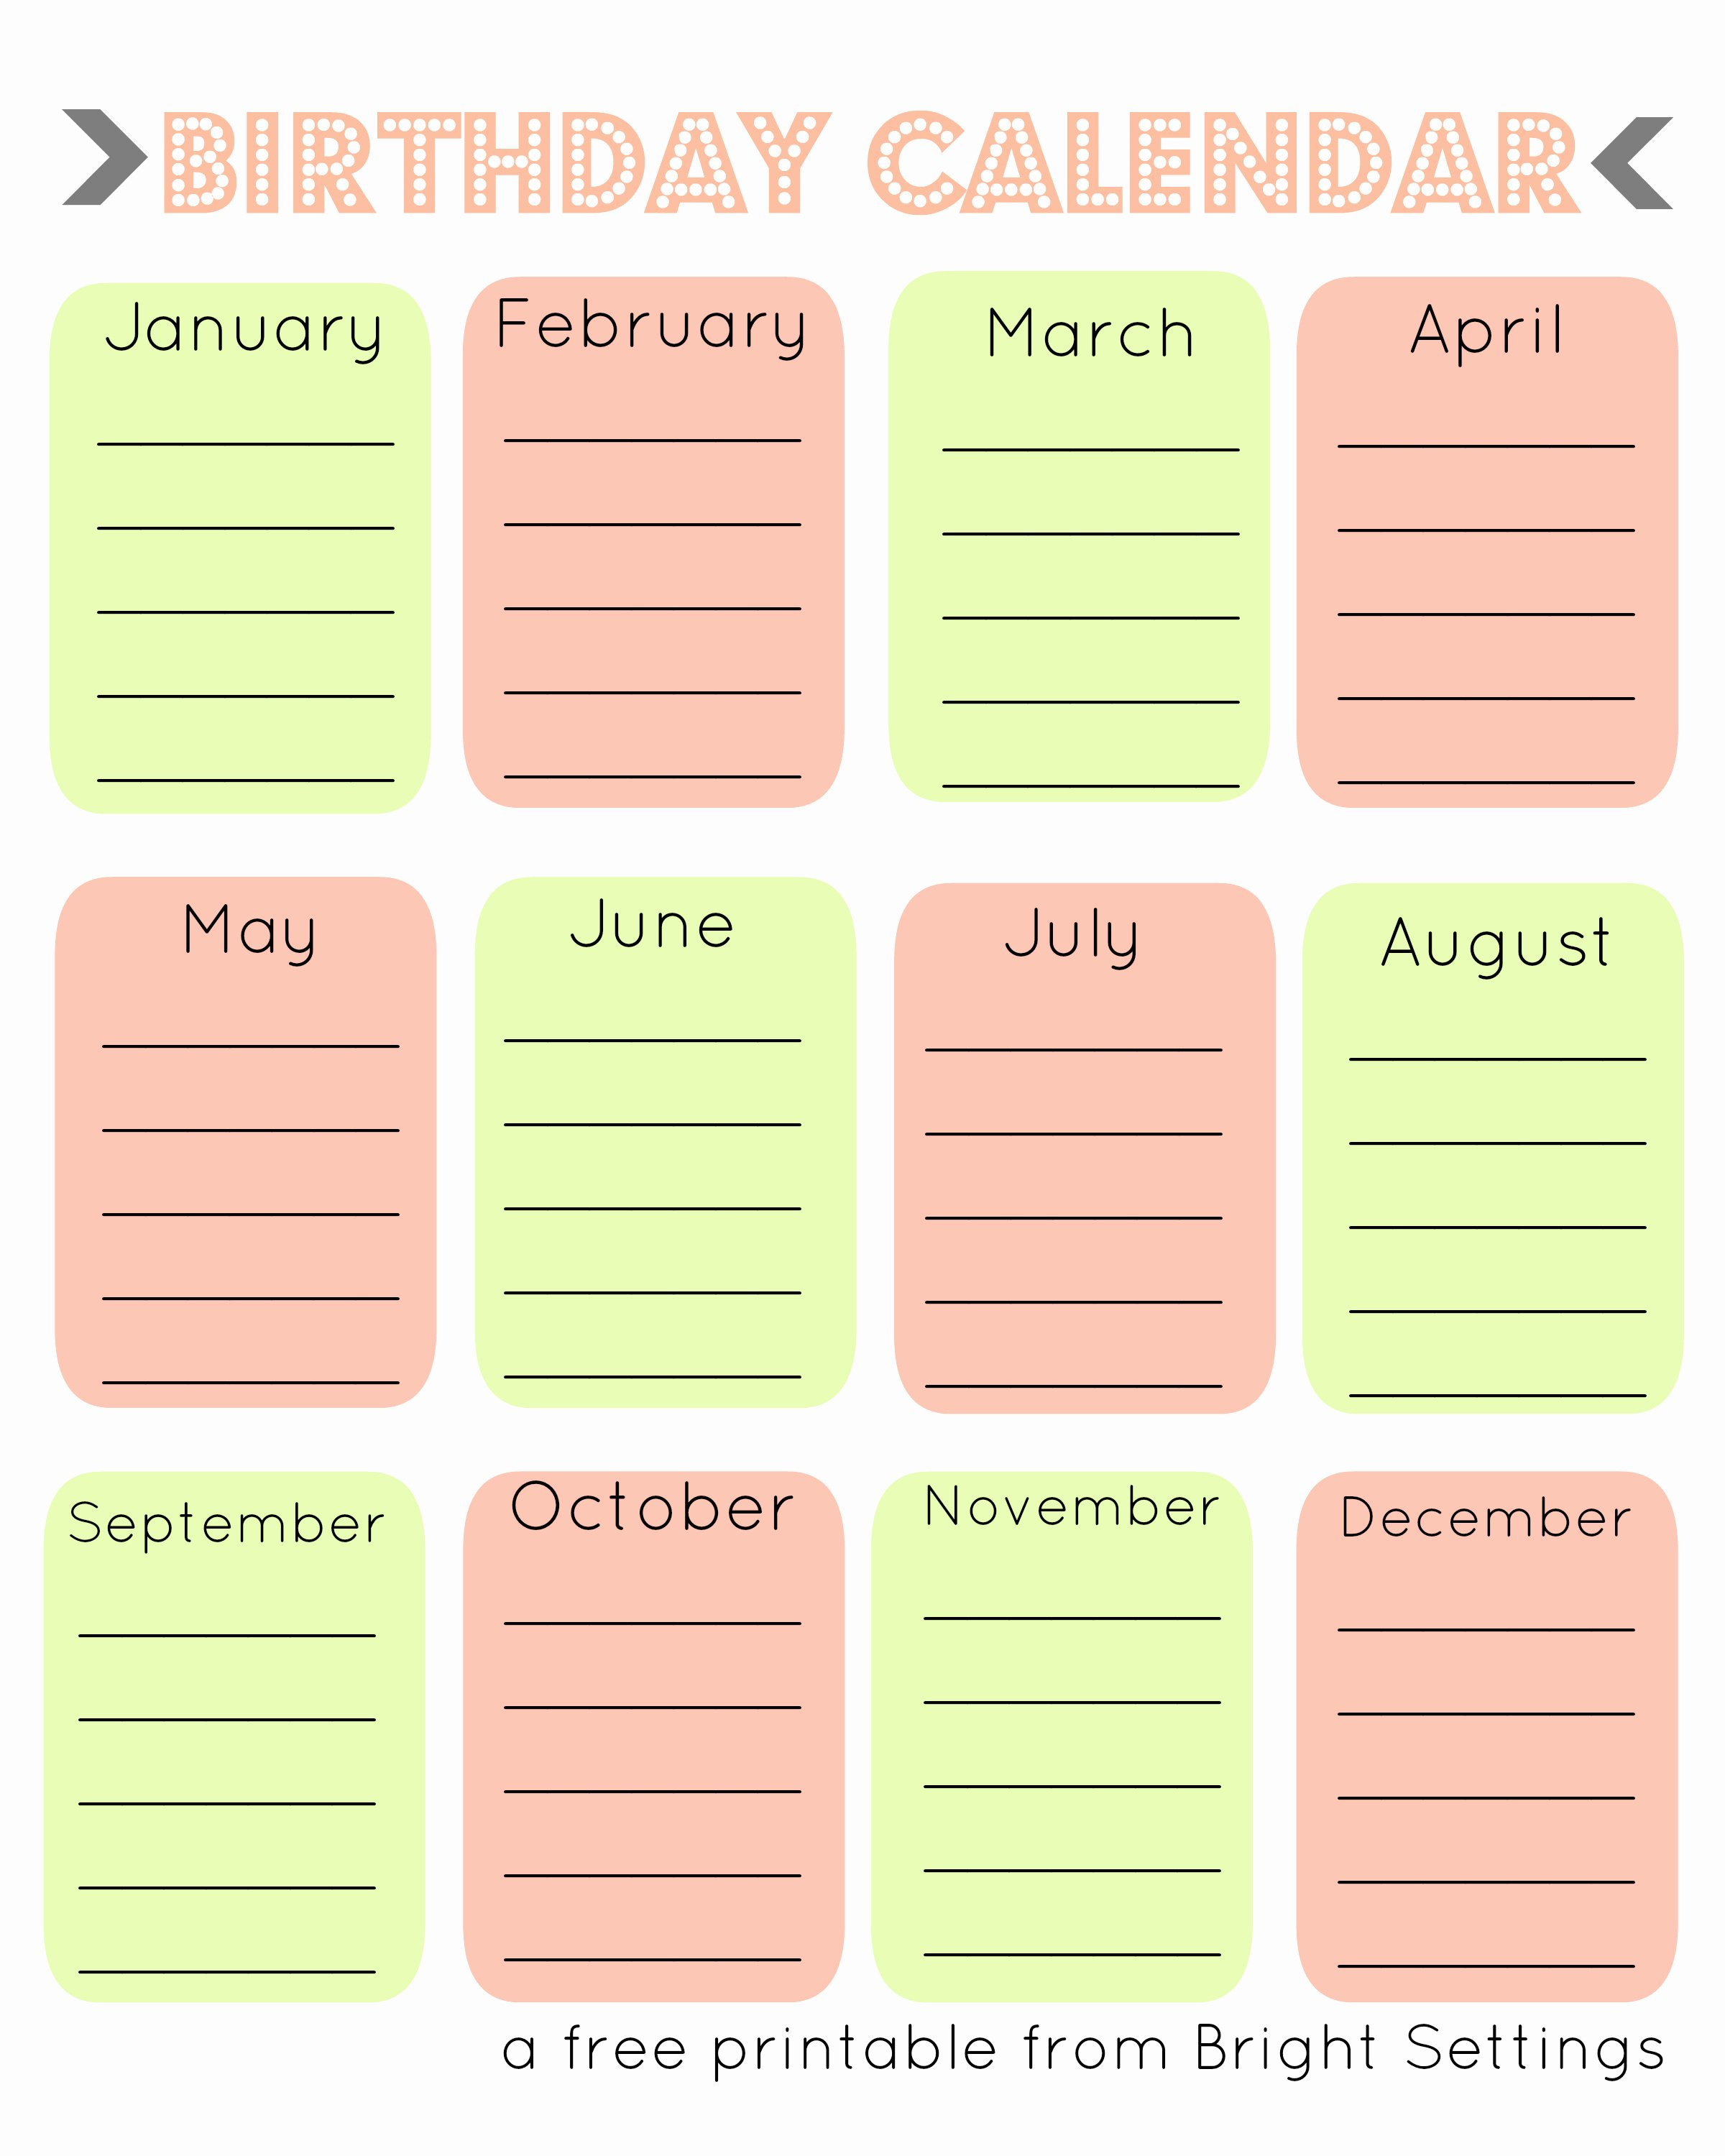 Printable Birthday Calendar Template New Free Printable Birthday Calendar the Bright Ideas Blog